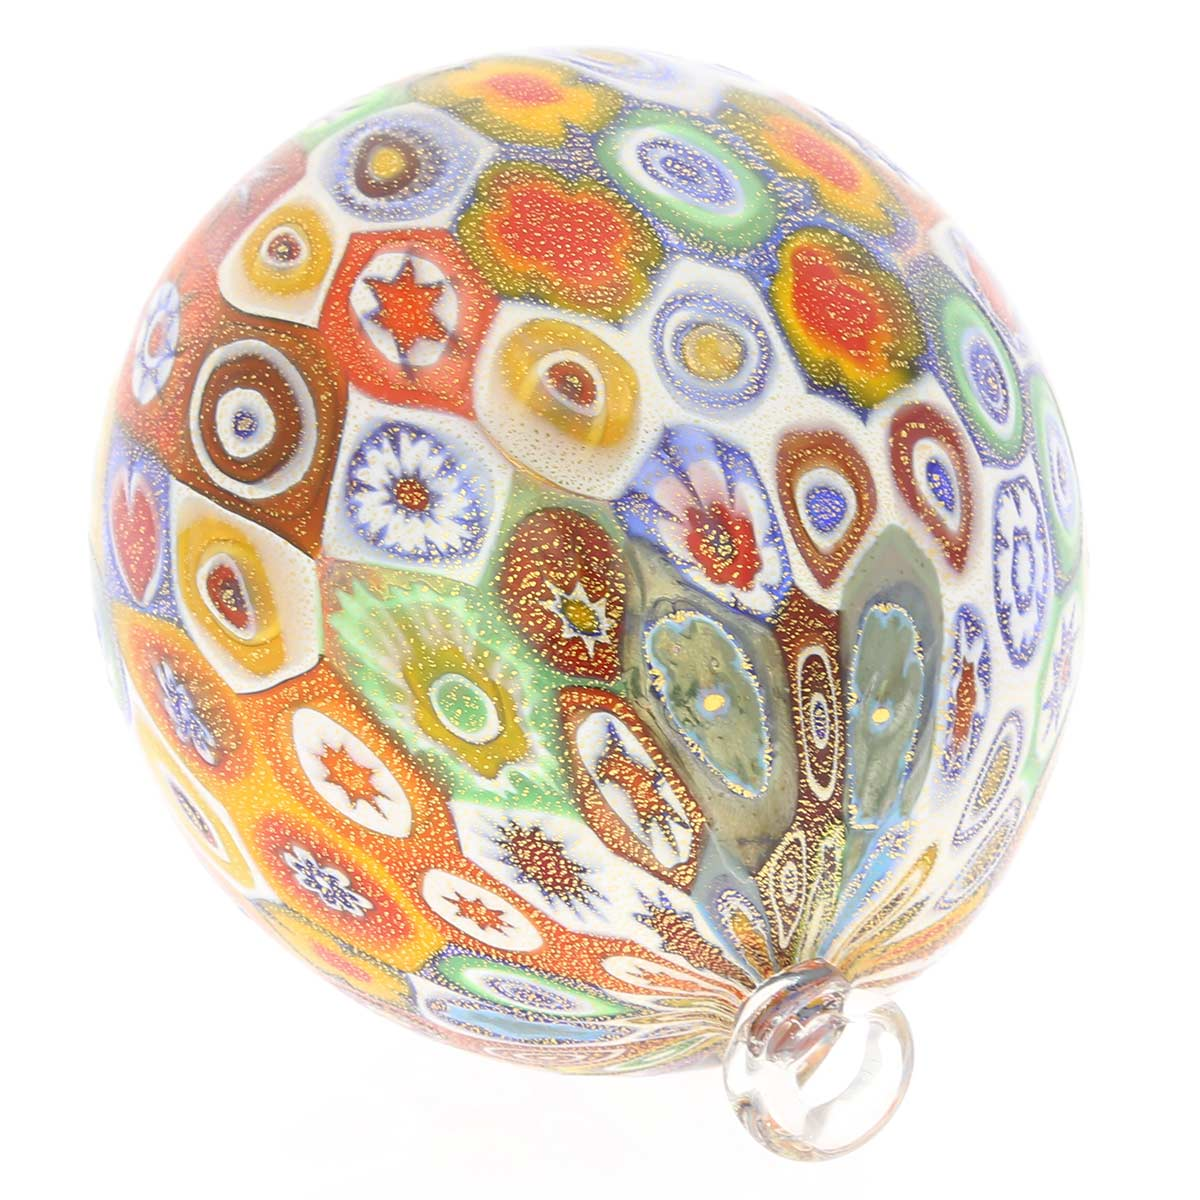 Murano Glass Christmas Ornament - Gold Millefiori